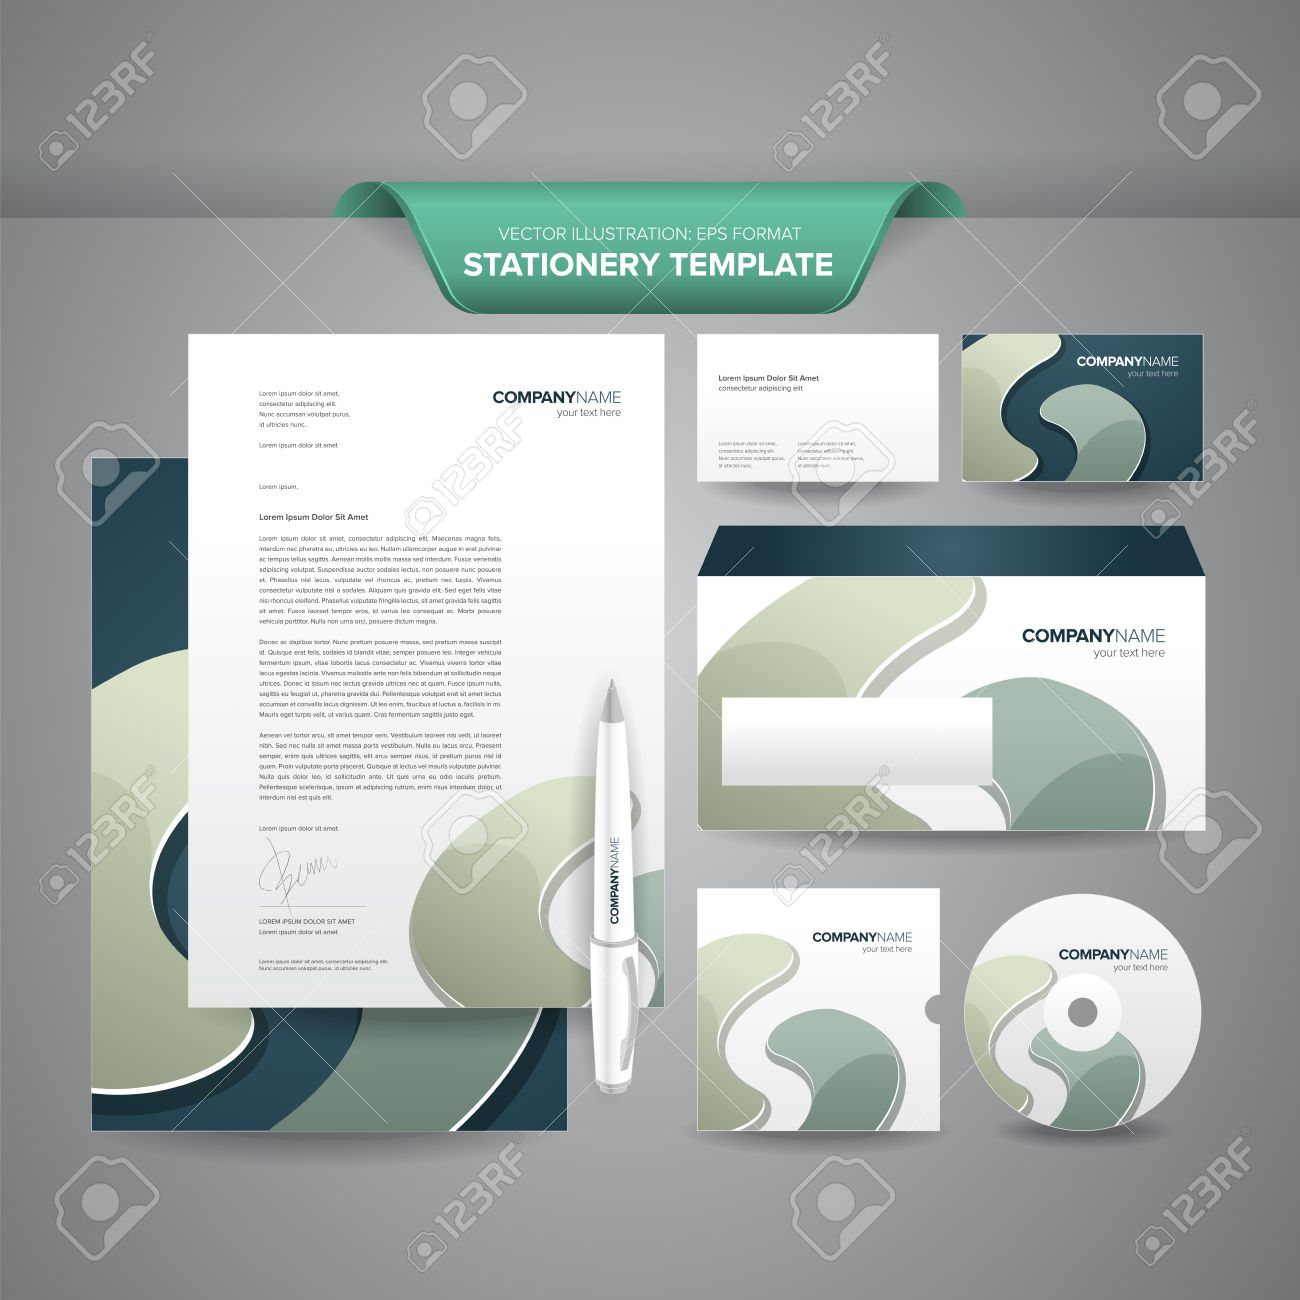 Complete set of business stationery templates such as letterhead complete set of business stationery templates such as letterhead envelope business card etc cheaphphosting Gallery